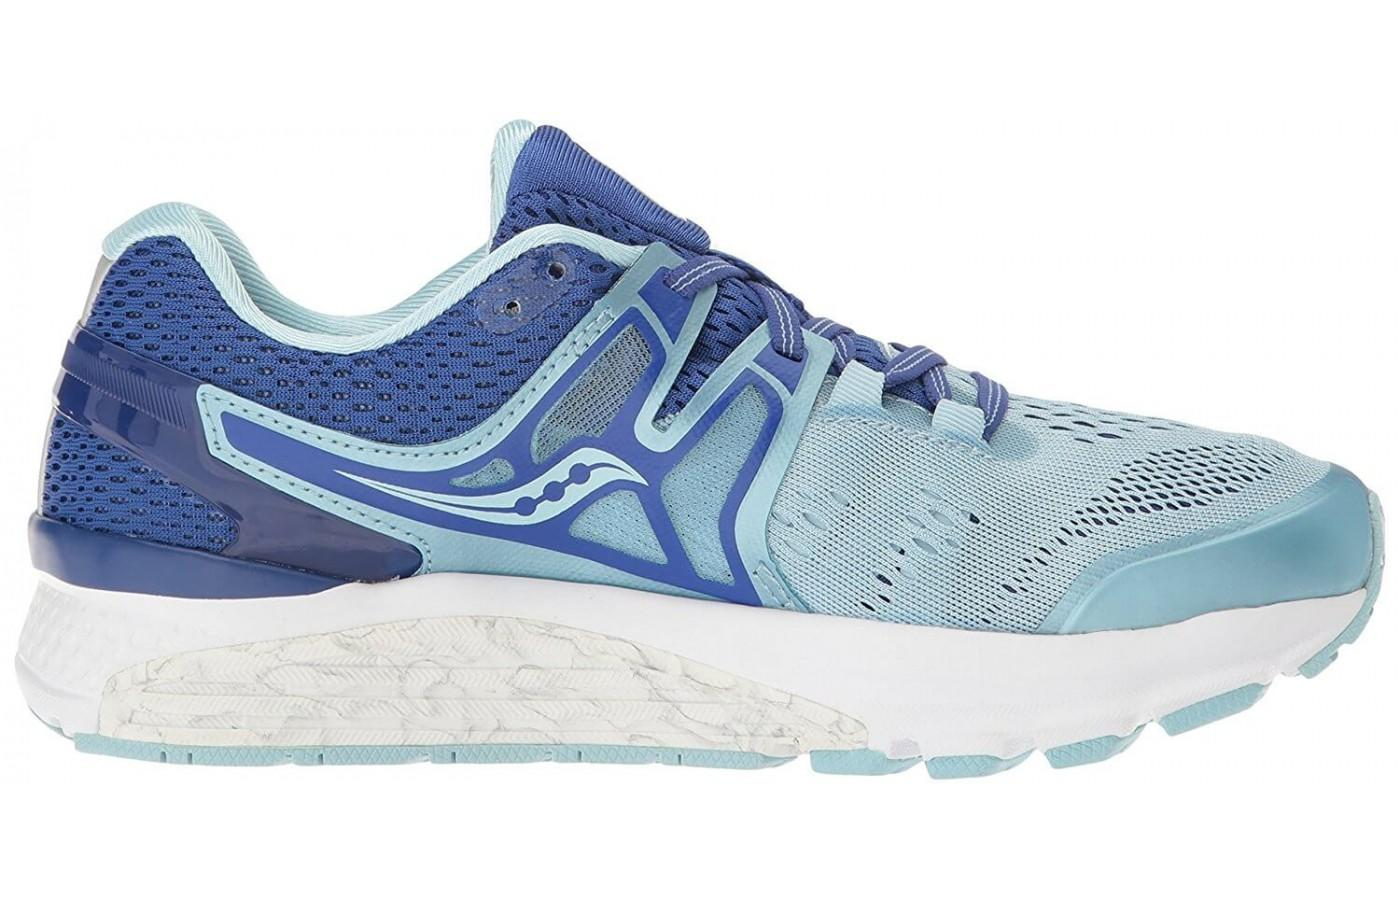 The upward slope of the sole unit acts as added arch support for over pronators